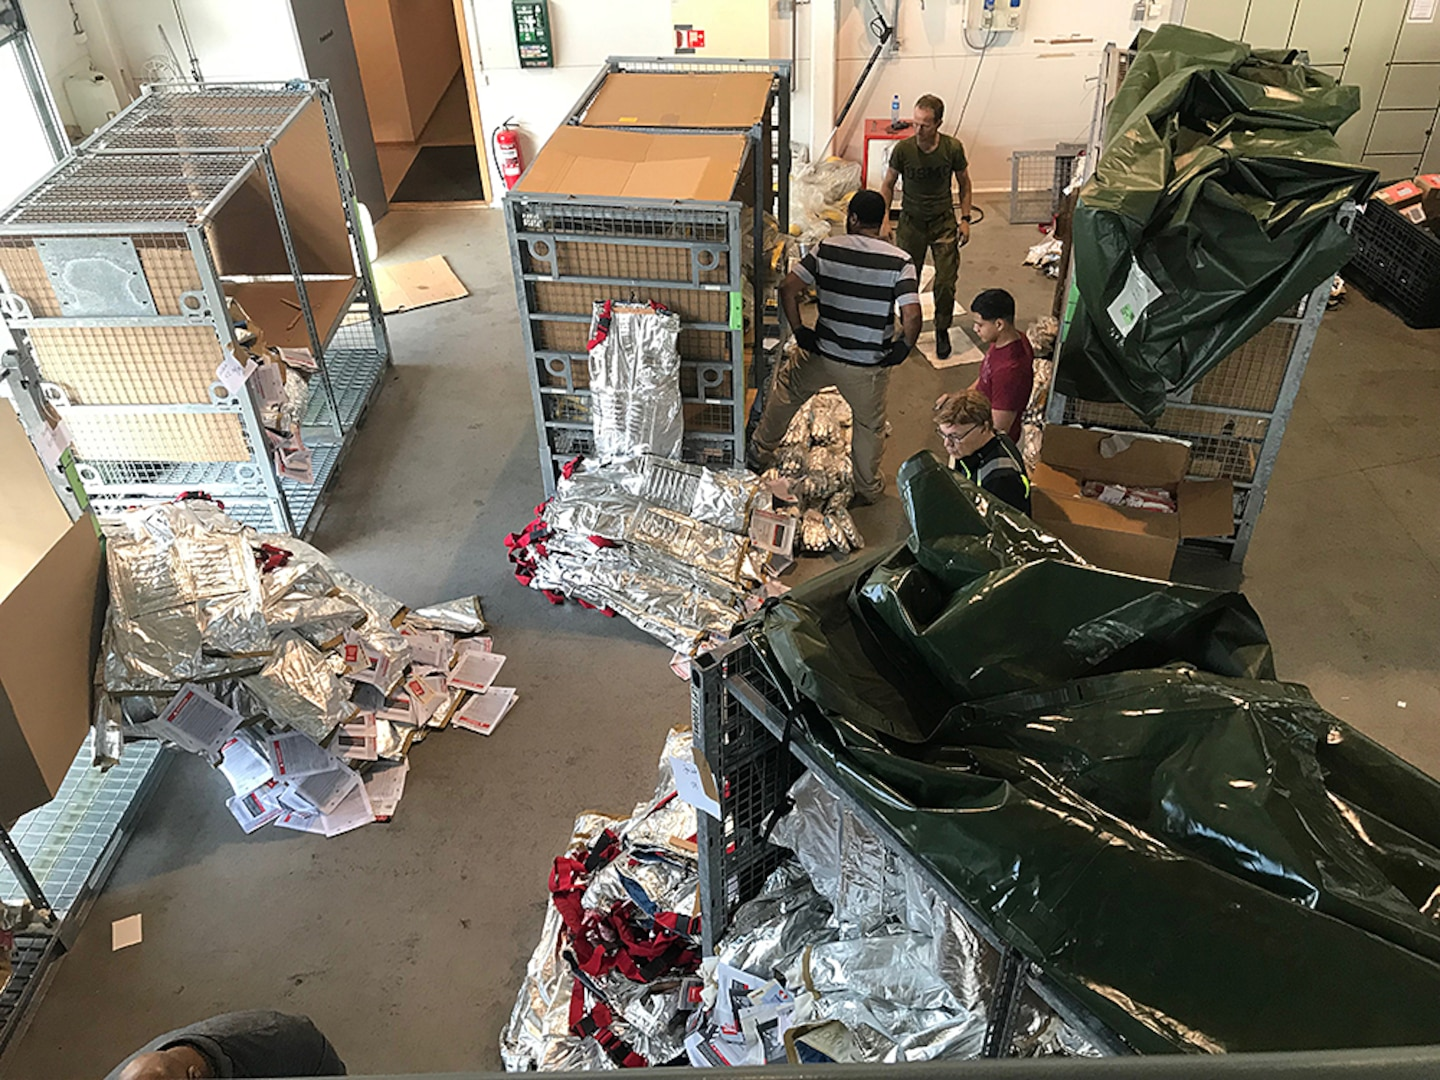 Disposal Services Representative Courtney Aubrey and Property Disposal Specialist Zeke Graham work alongside Norwegian personnel to prepare firefighting suits and other excess material for turn in to DLA at a secure storage facility in Norway.